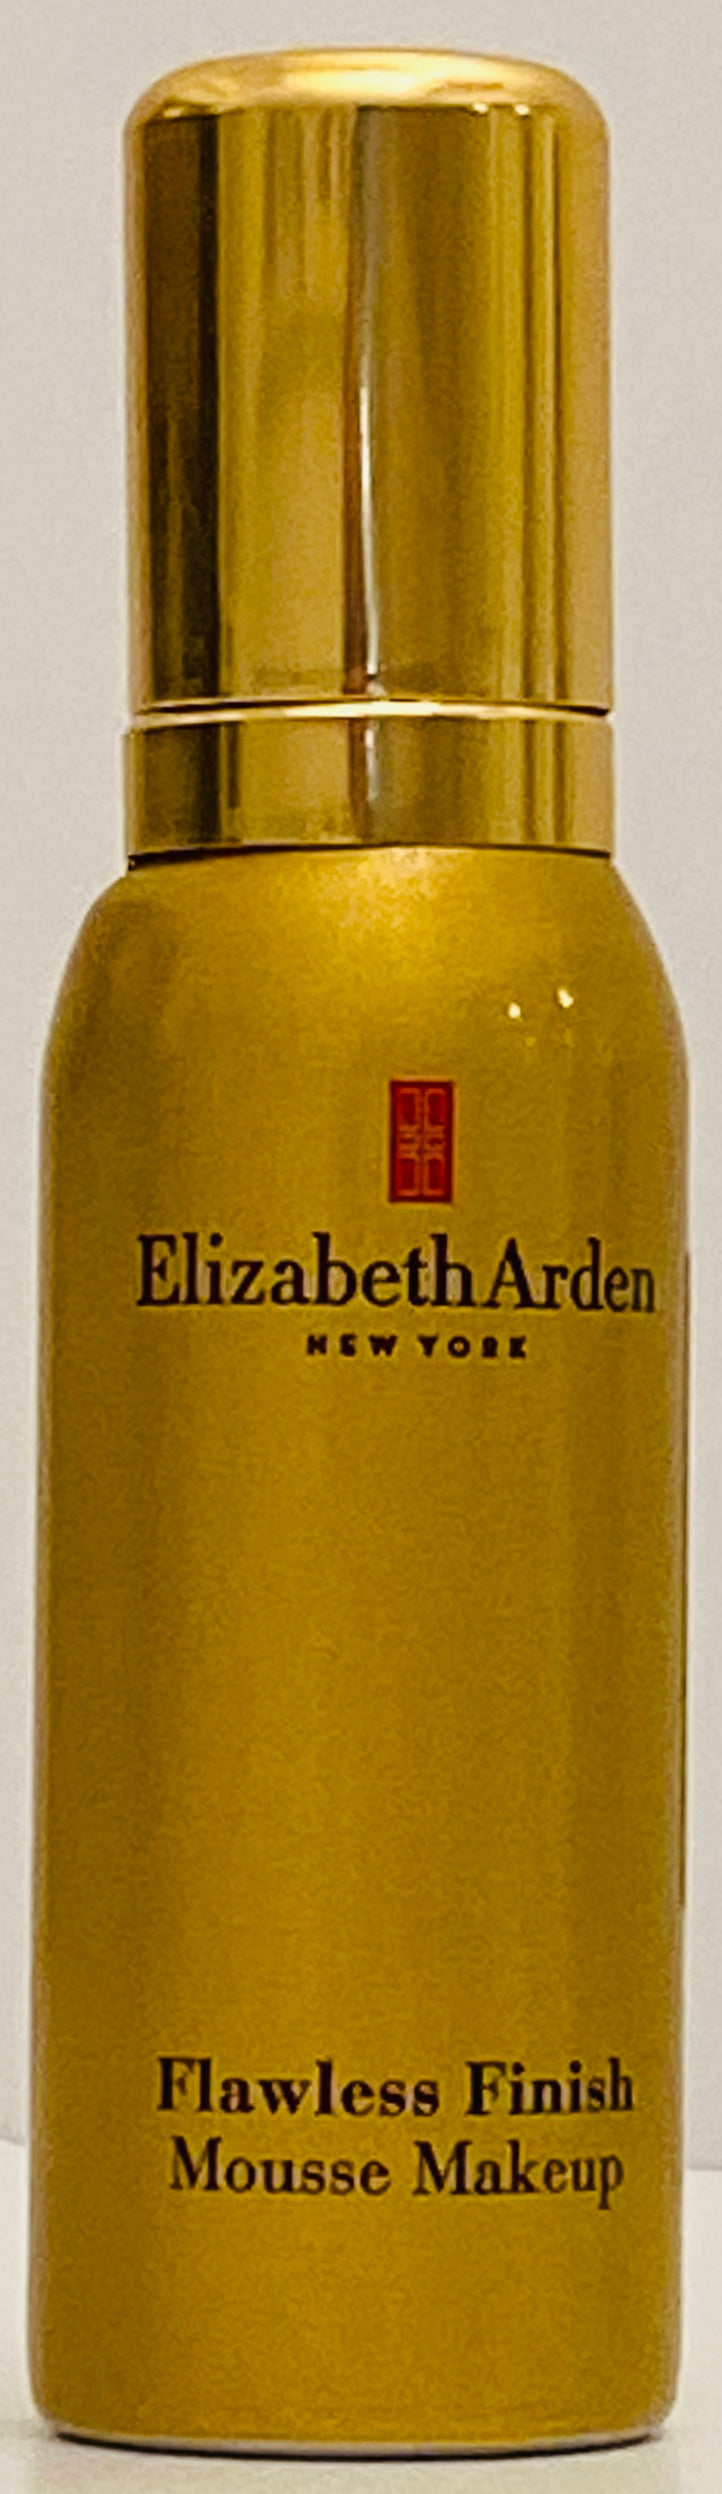 Wholesale - Elizabeth Arden - Flawless Finish Mousse Makeup - 1.4 Oz. - Shell 39 - 29 Pieces Lot